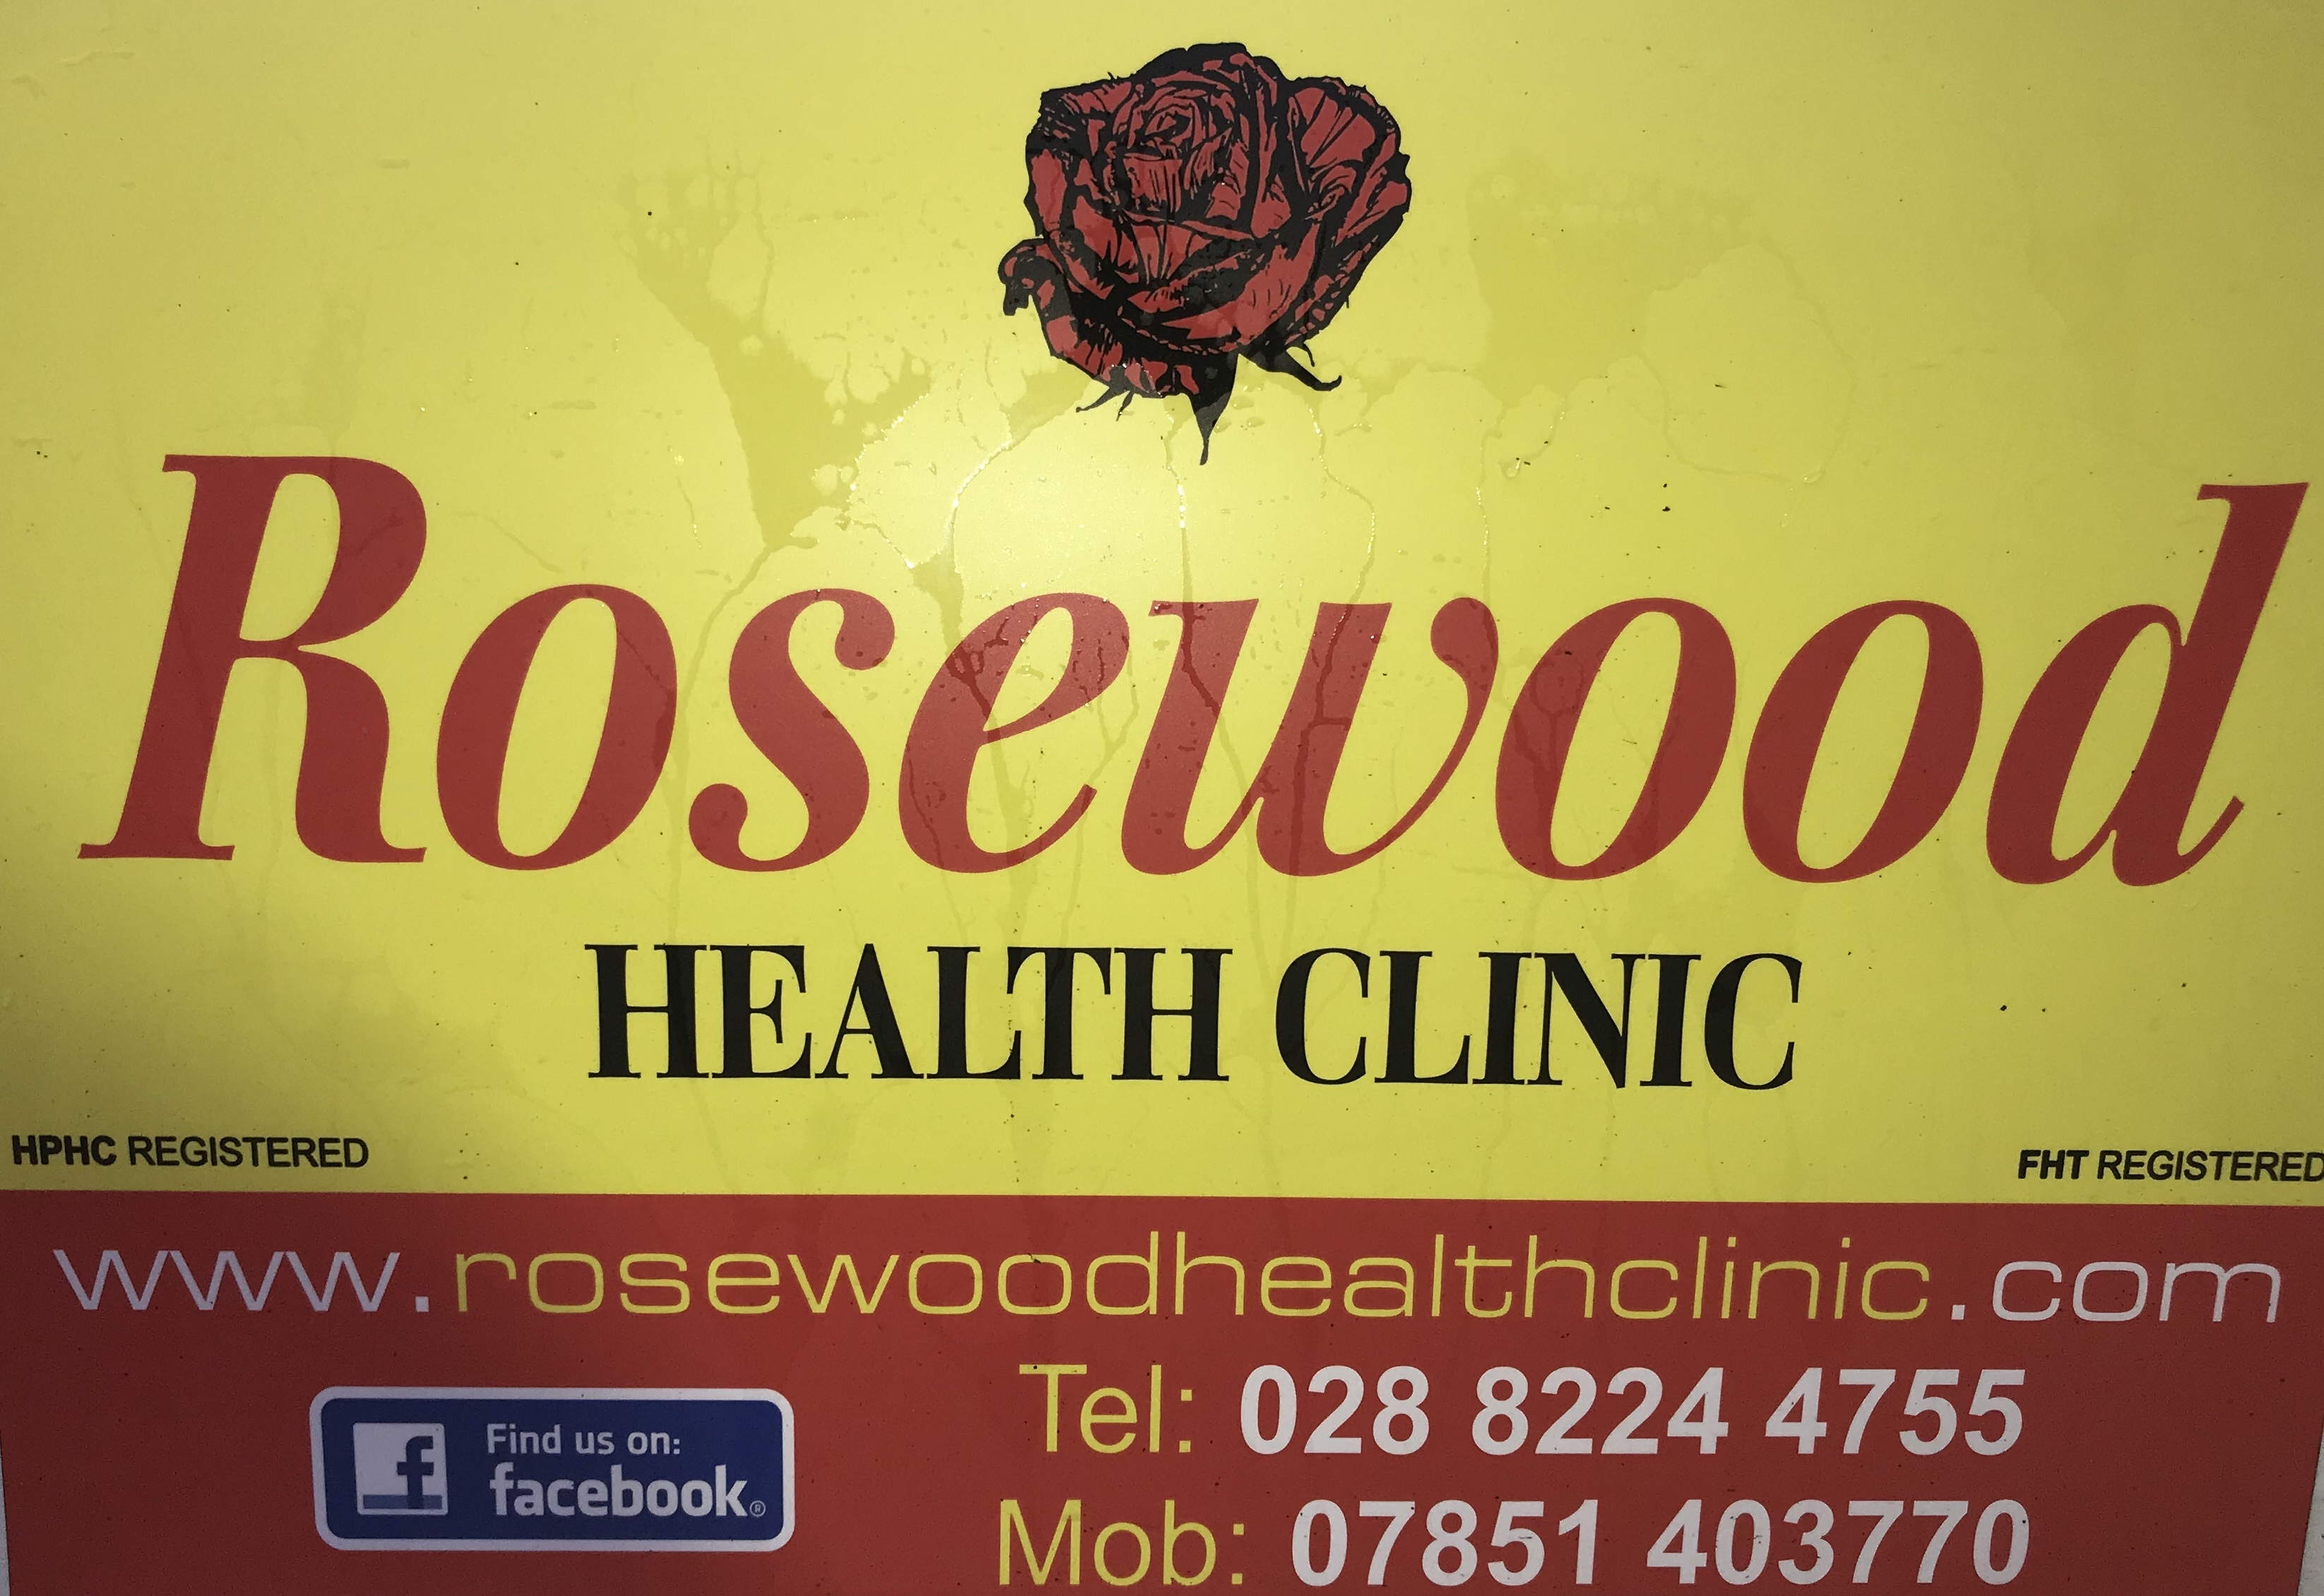 Business Profile: Rosewood Health Clinic